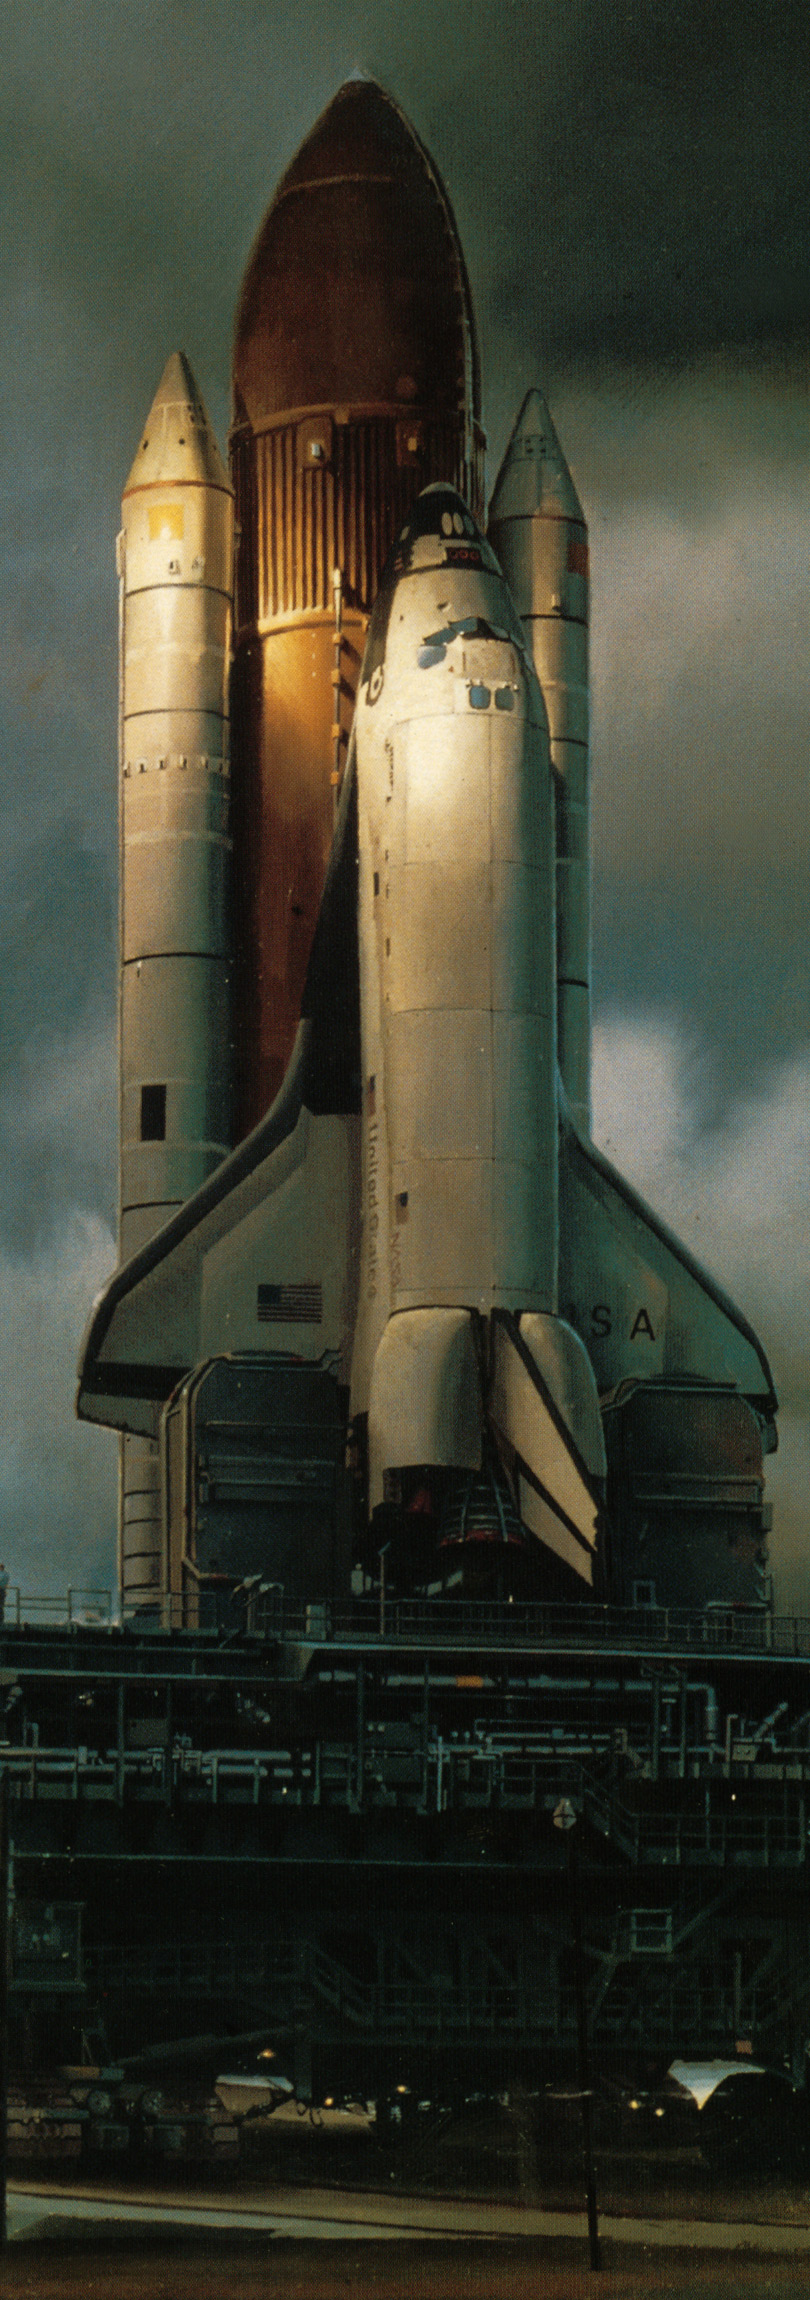 concept ships: A tribute to NASA's space shuttle program ...